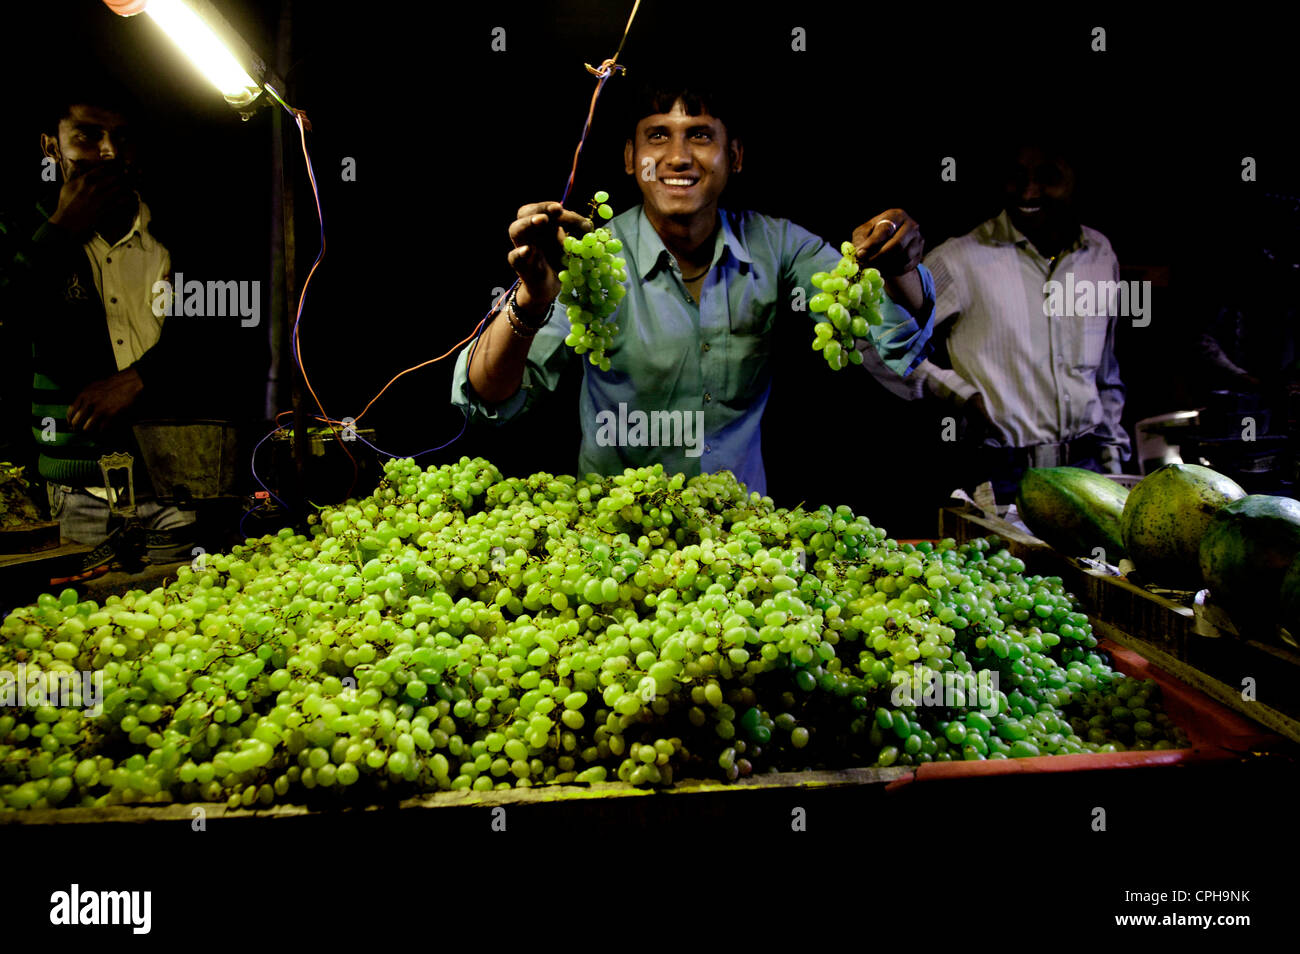 Seller on the nightmarket - Stock Image